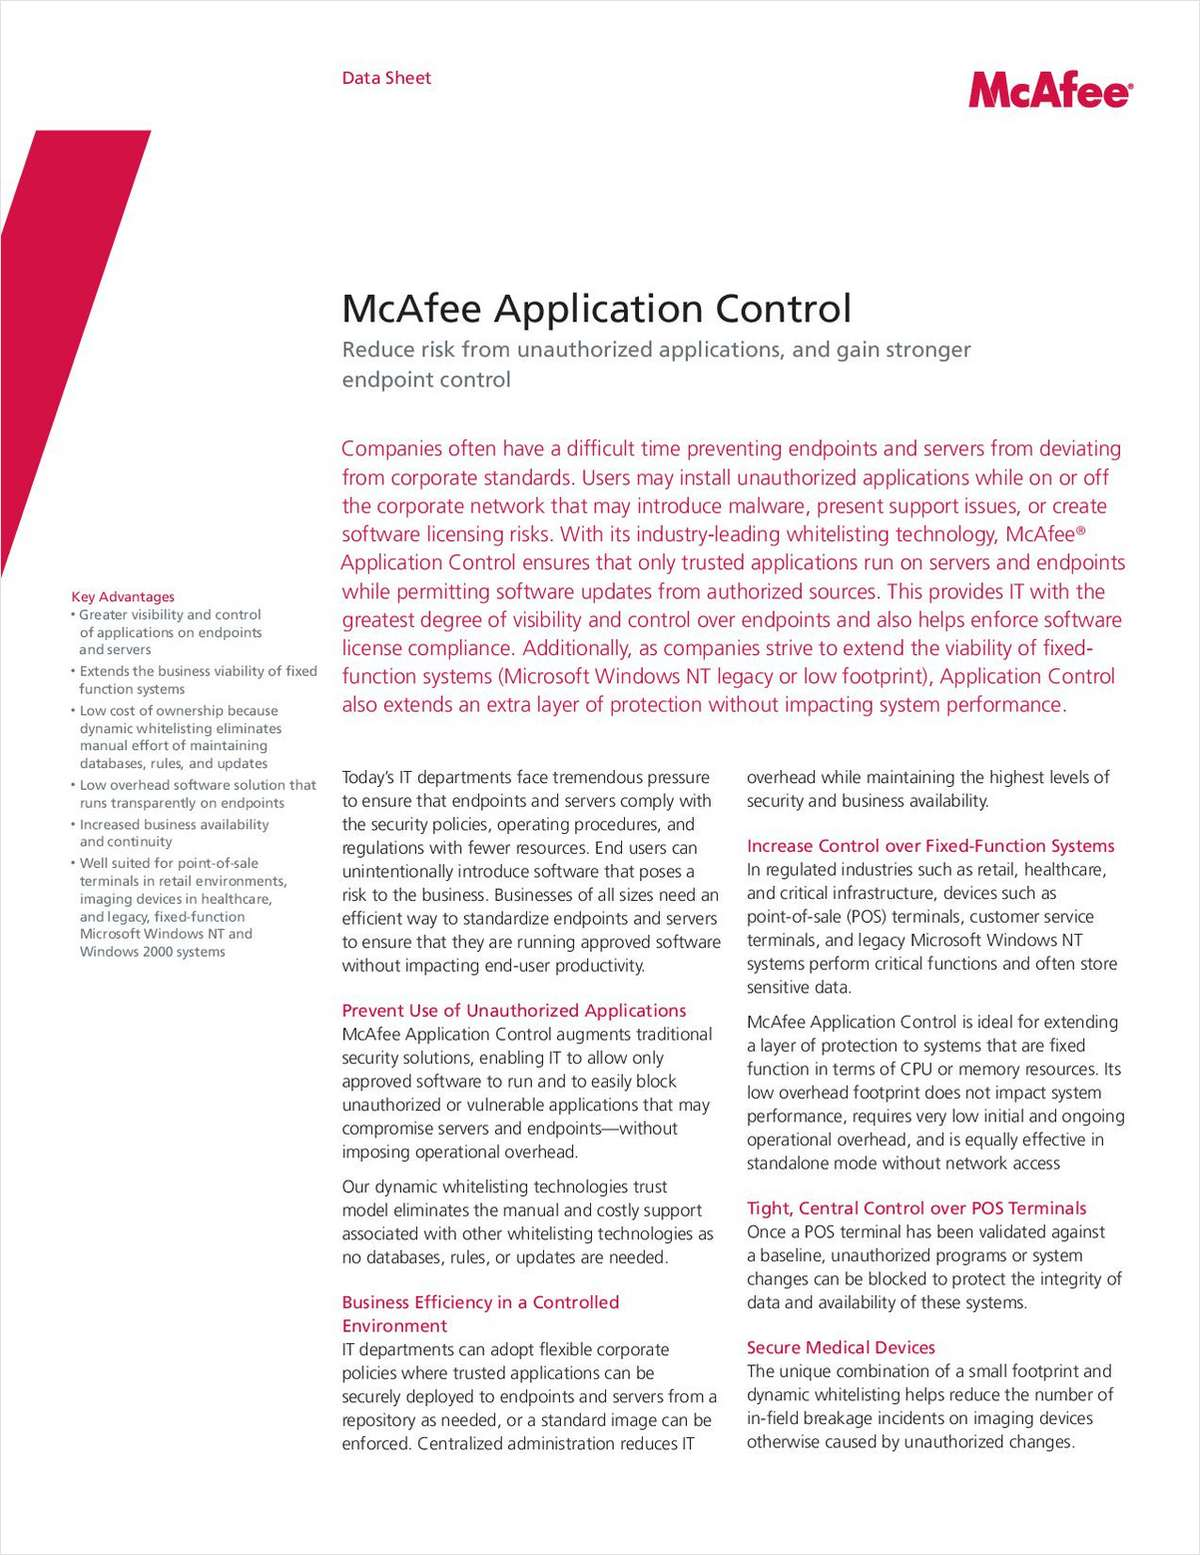 Key to Reducing Risk from Unauthorized Applications